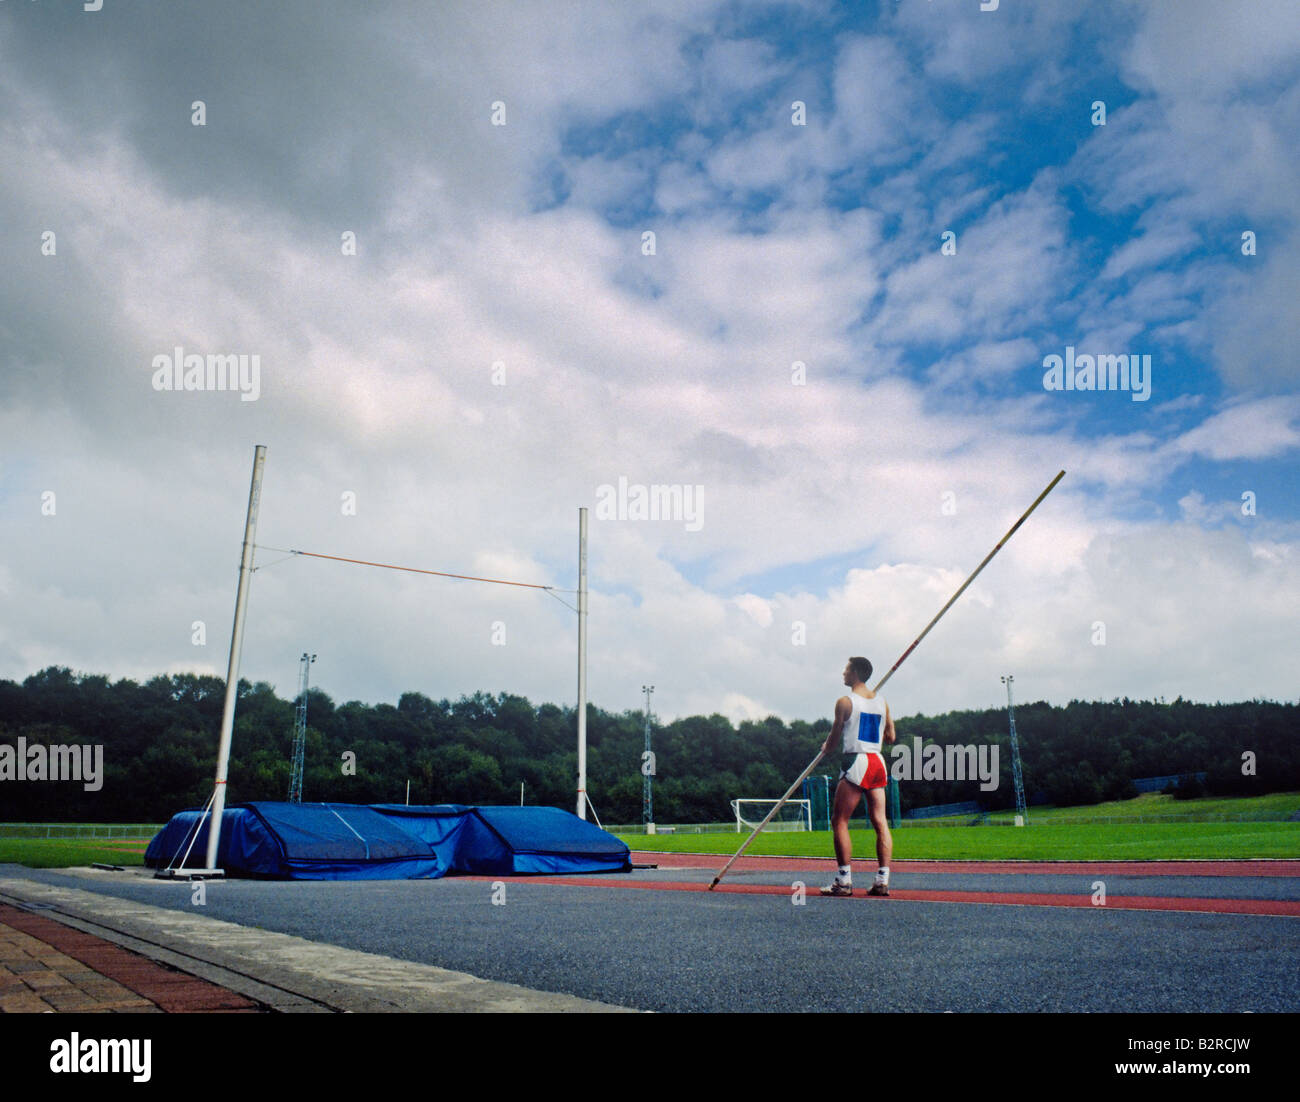 Pole vaulter preparing for event. - Stock Image